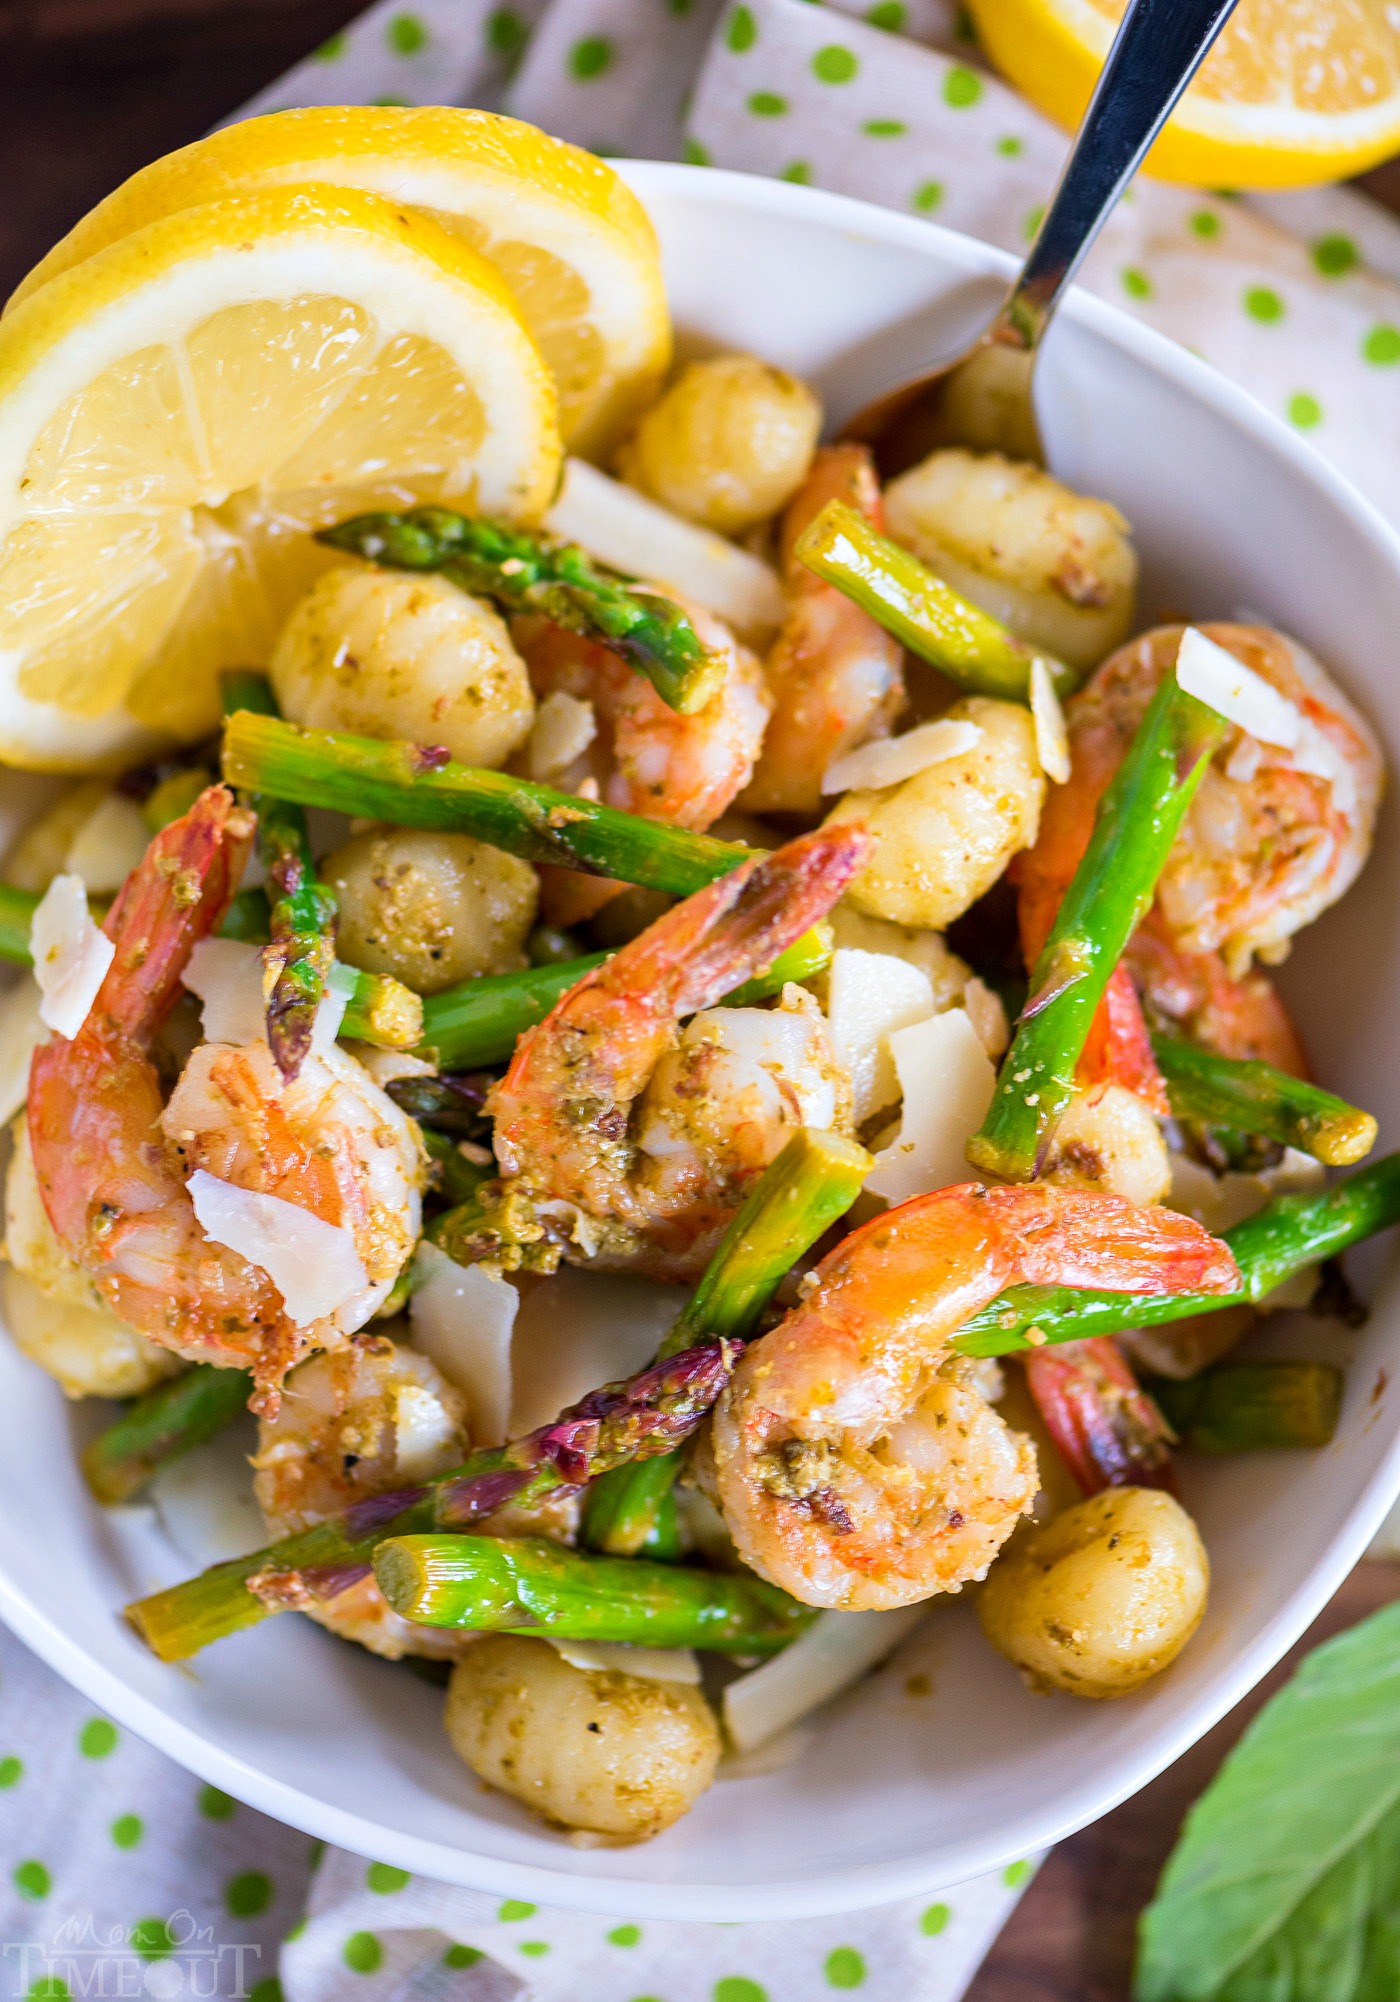 Pesto Shrimp with Gnocchi and Asparagus